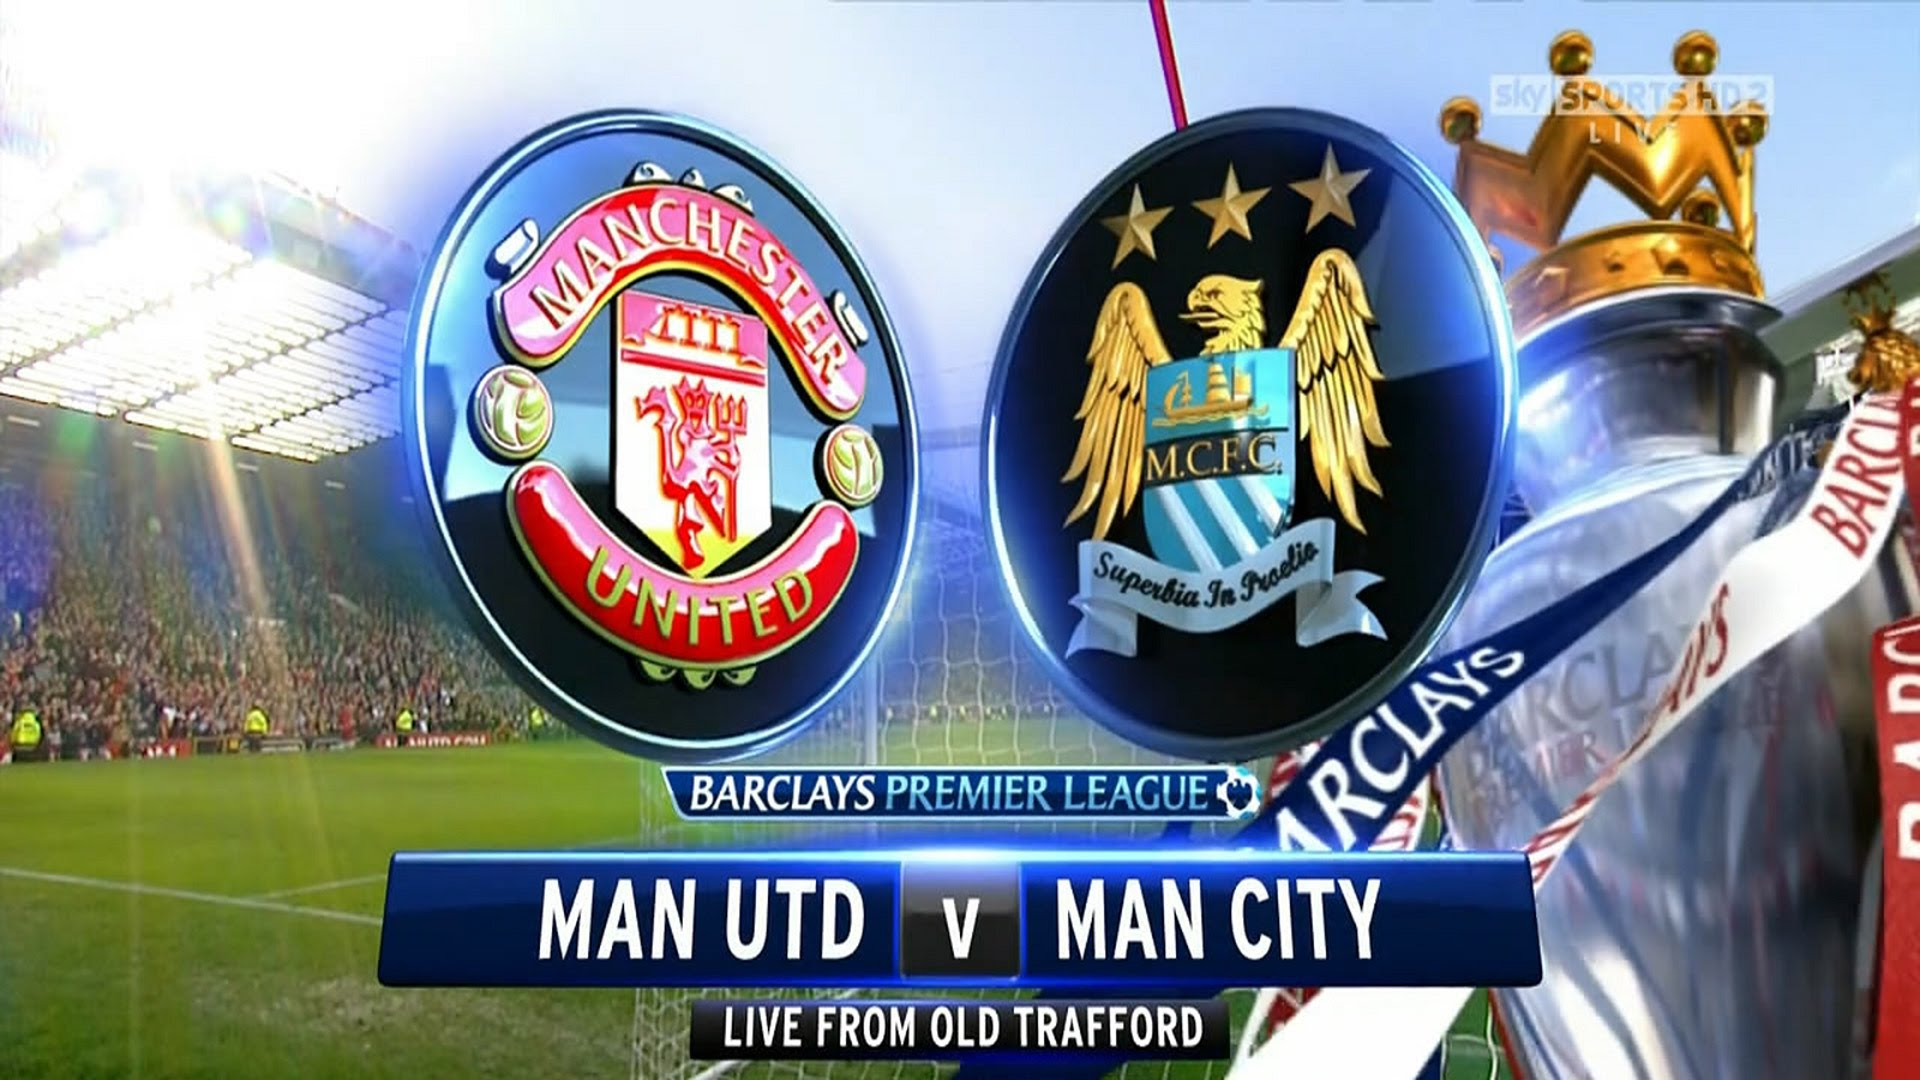 Manchester United vs Manchester City live on Sky Sports